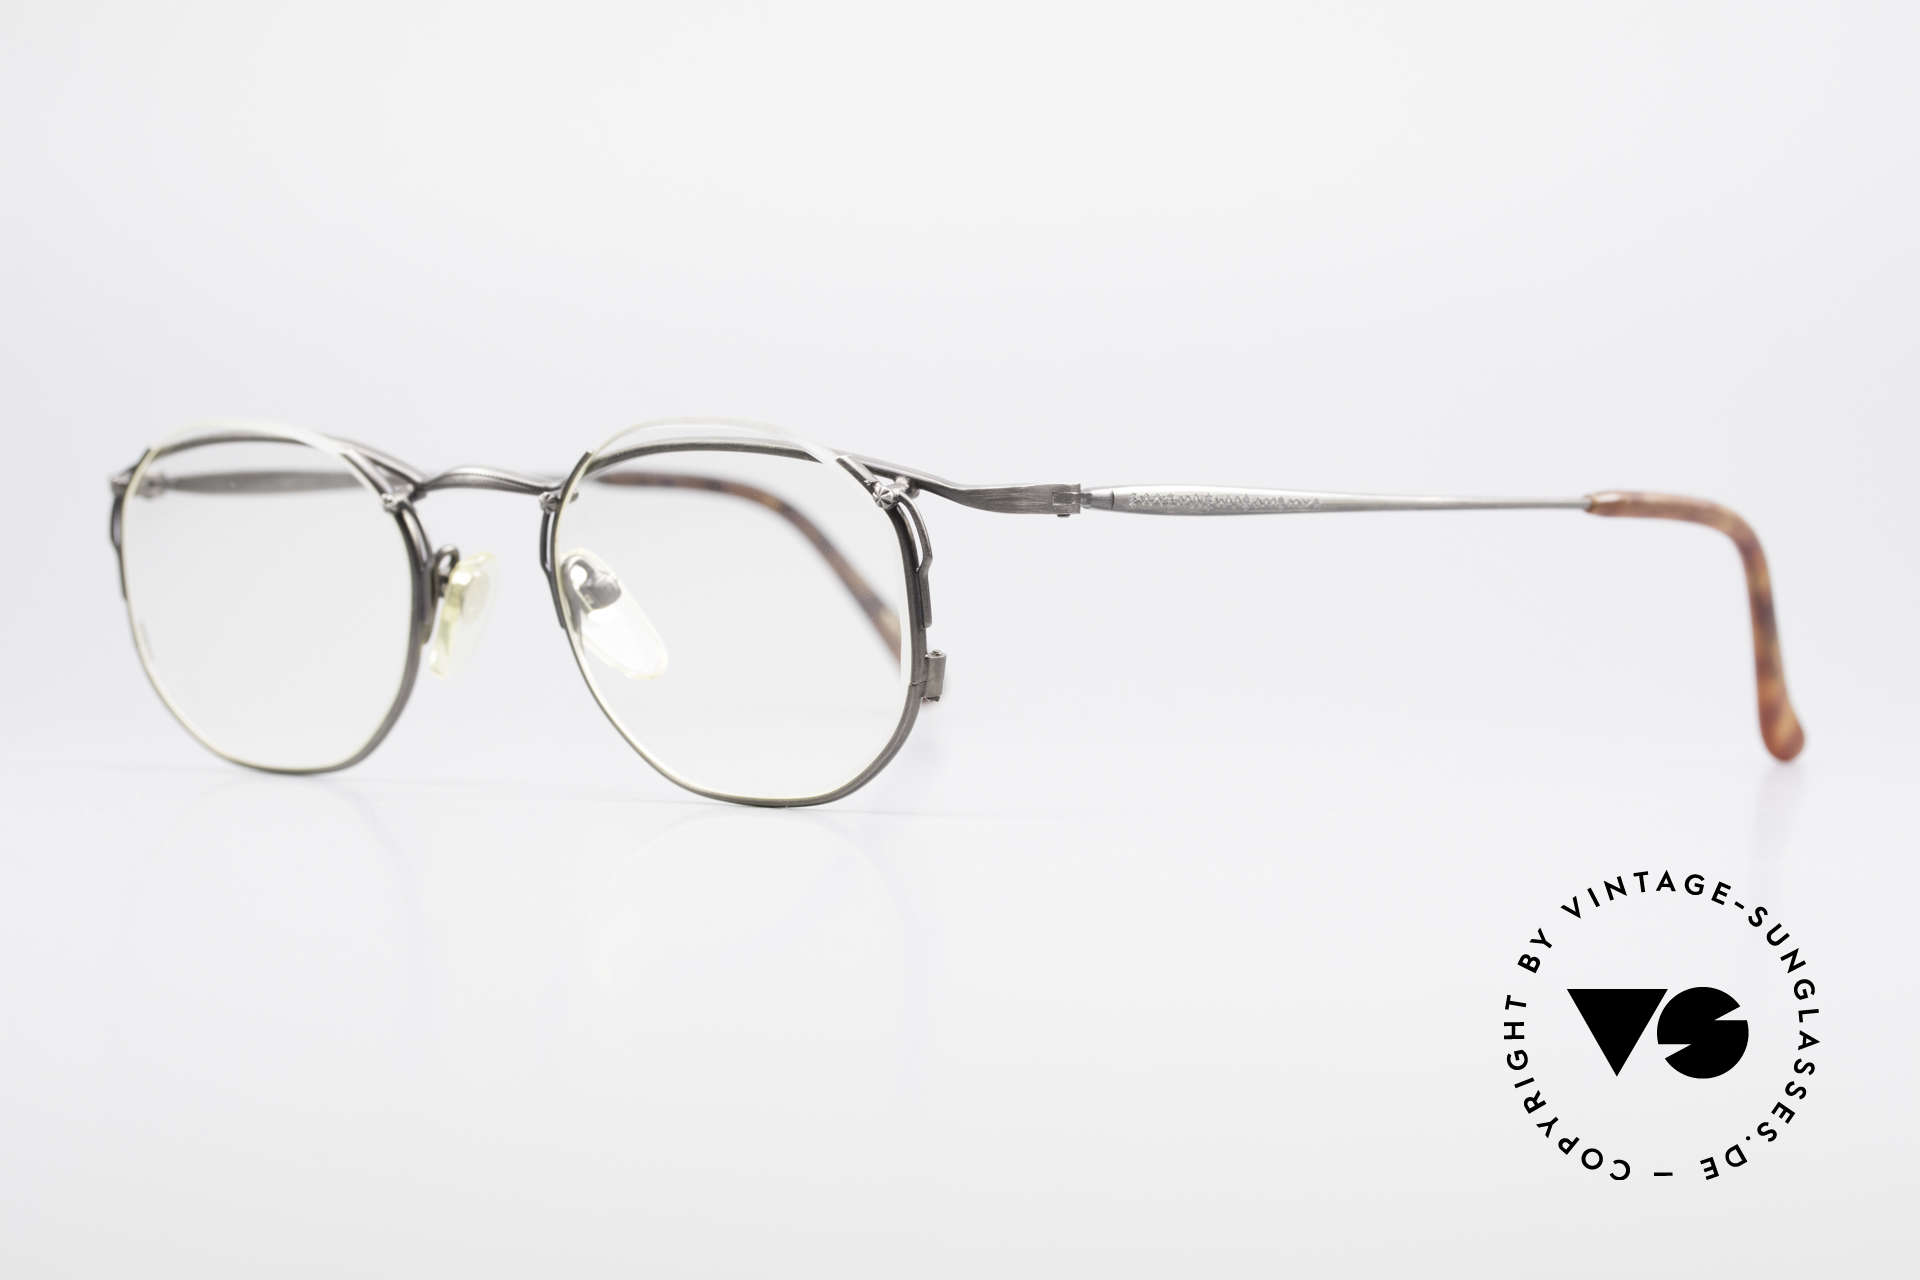 Matsuda 2856 Extraordinary Vintage Frame, the clear DEMO lenses are semi-rimless mounted, Made for Men and Women